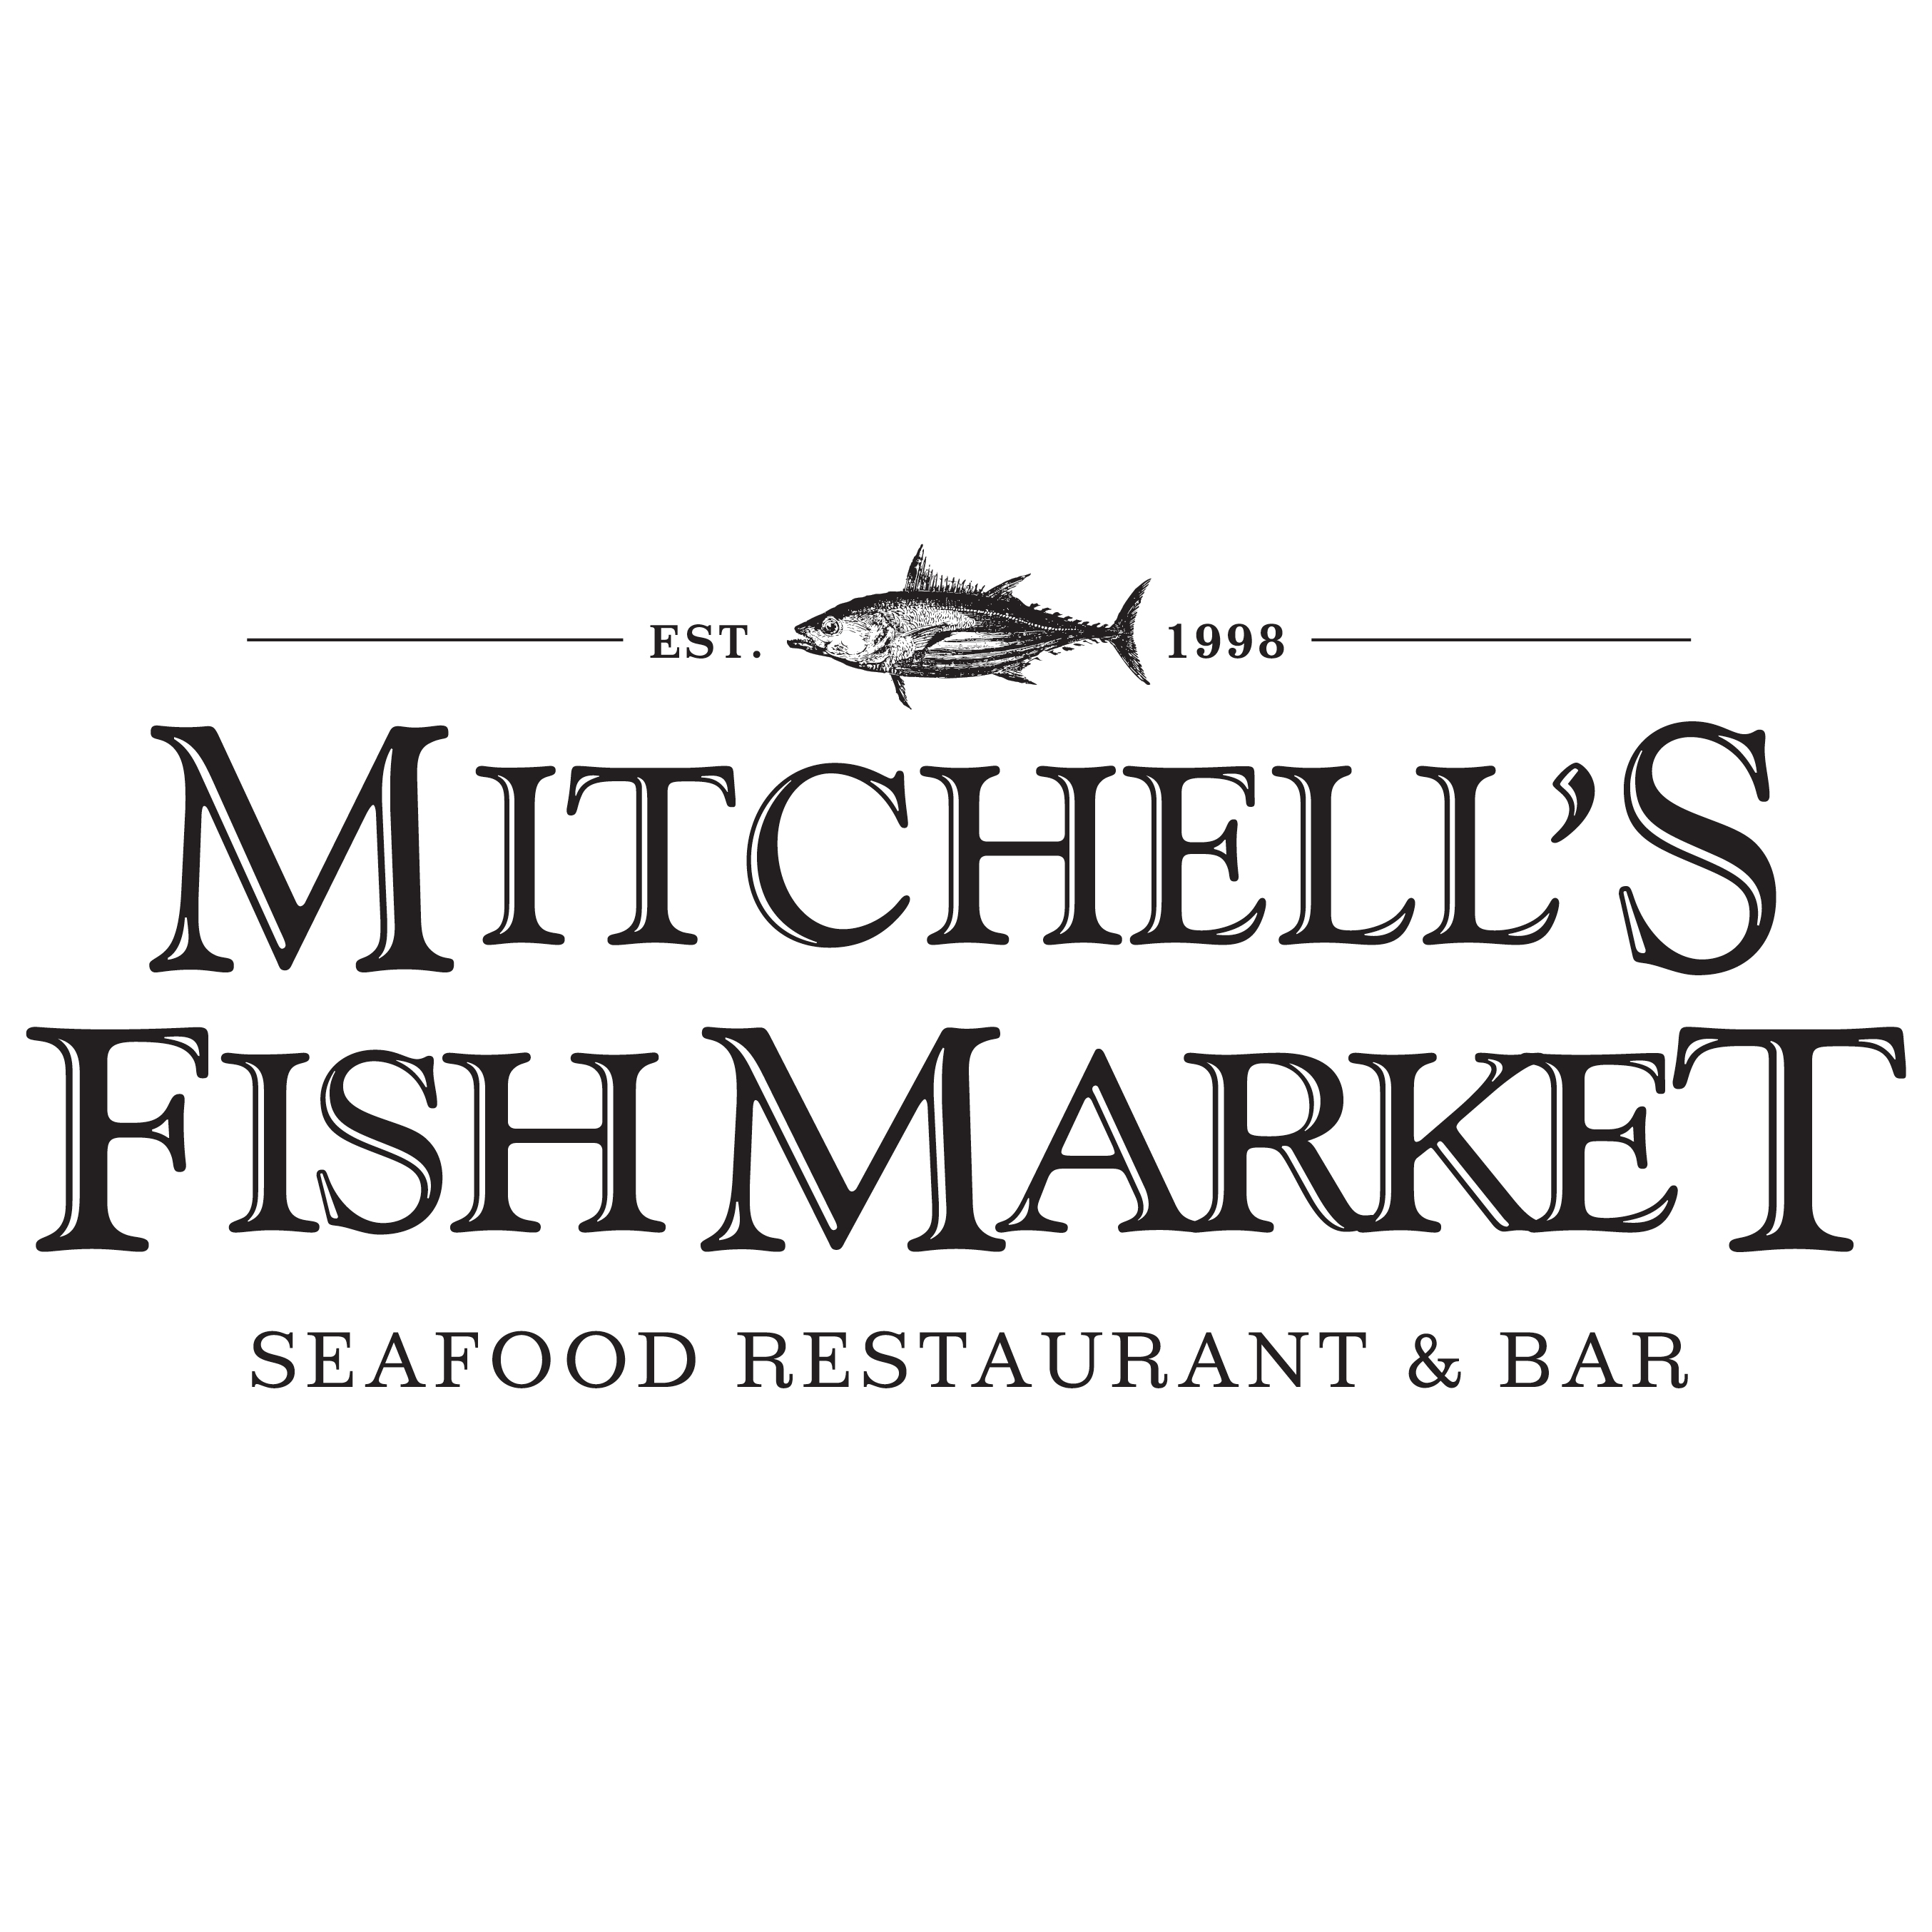 Mitchell s fish market performance one shopping guide for Mitchells fish market carmel